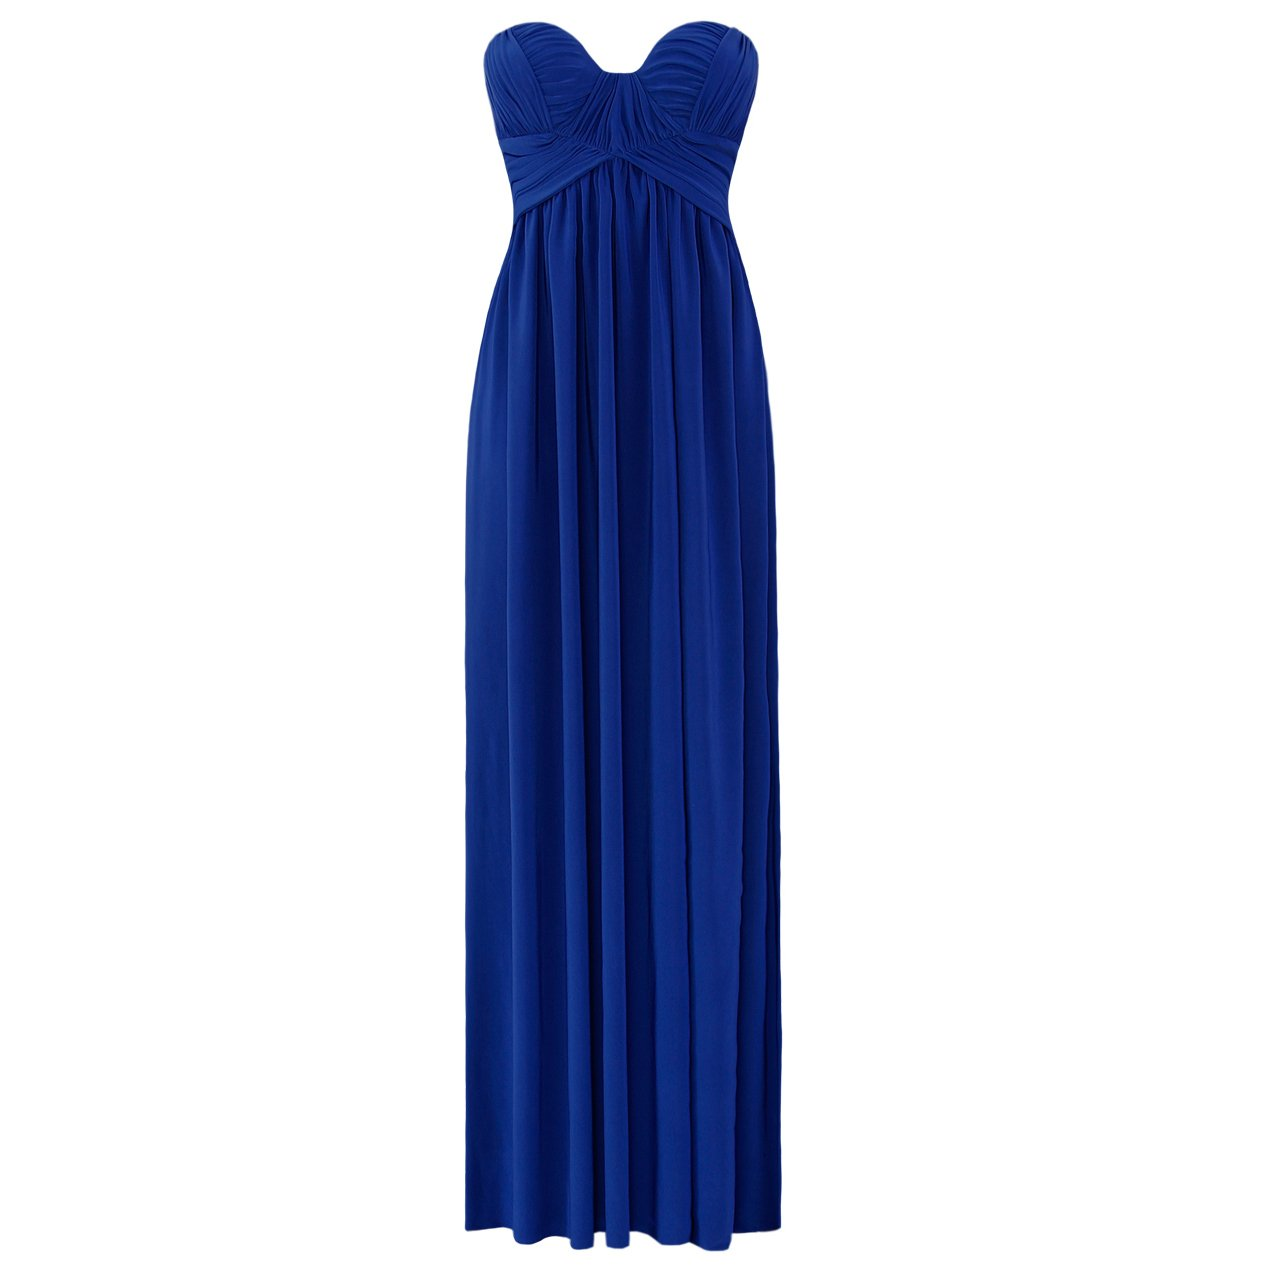 JESSICA ALBA BLUE LADIES STRAPLESS LONG SUMMER EVENING PARTY PROM GOWN MAXI DRESS UK 8-10, US 4-6